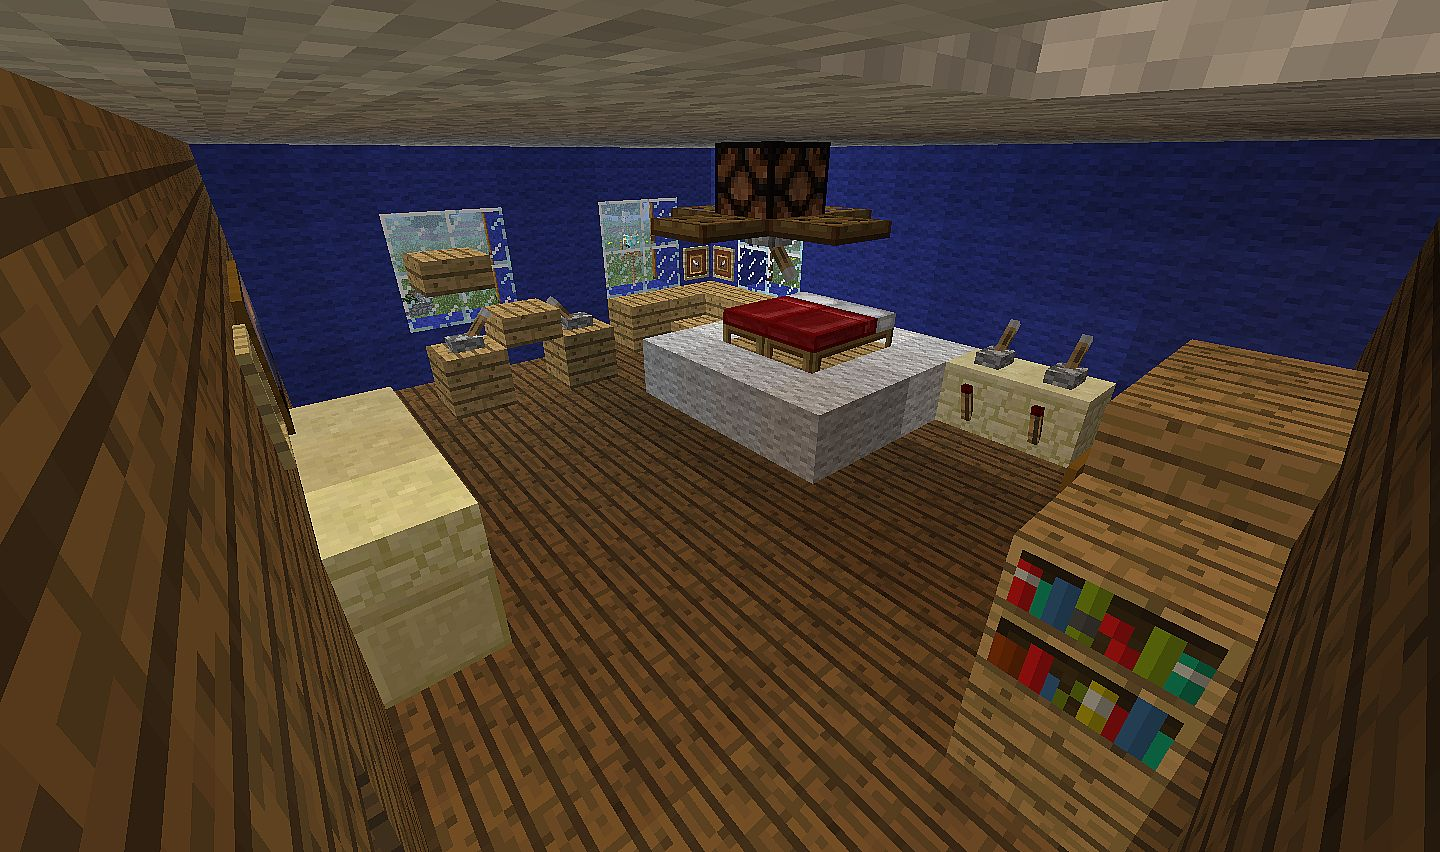 Modern home minecraft size minecraft project for Minecraft bedroom ideas xbox 360